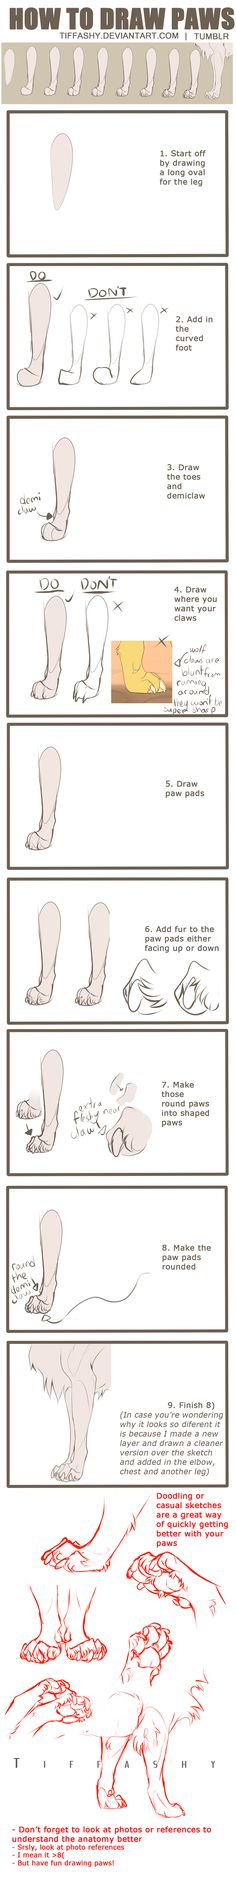 How to Draw Paws Tutorial (easy) by TIFFASHY on DeviantArt